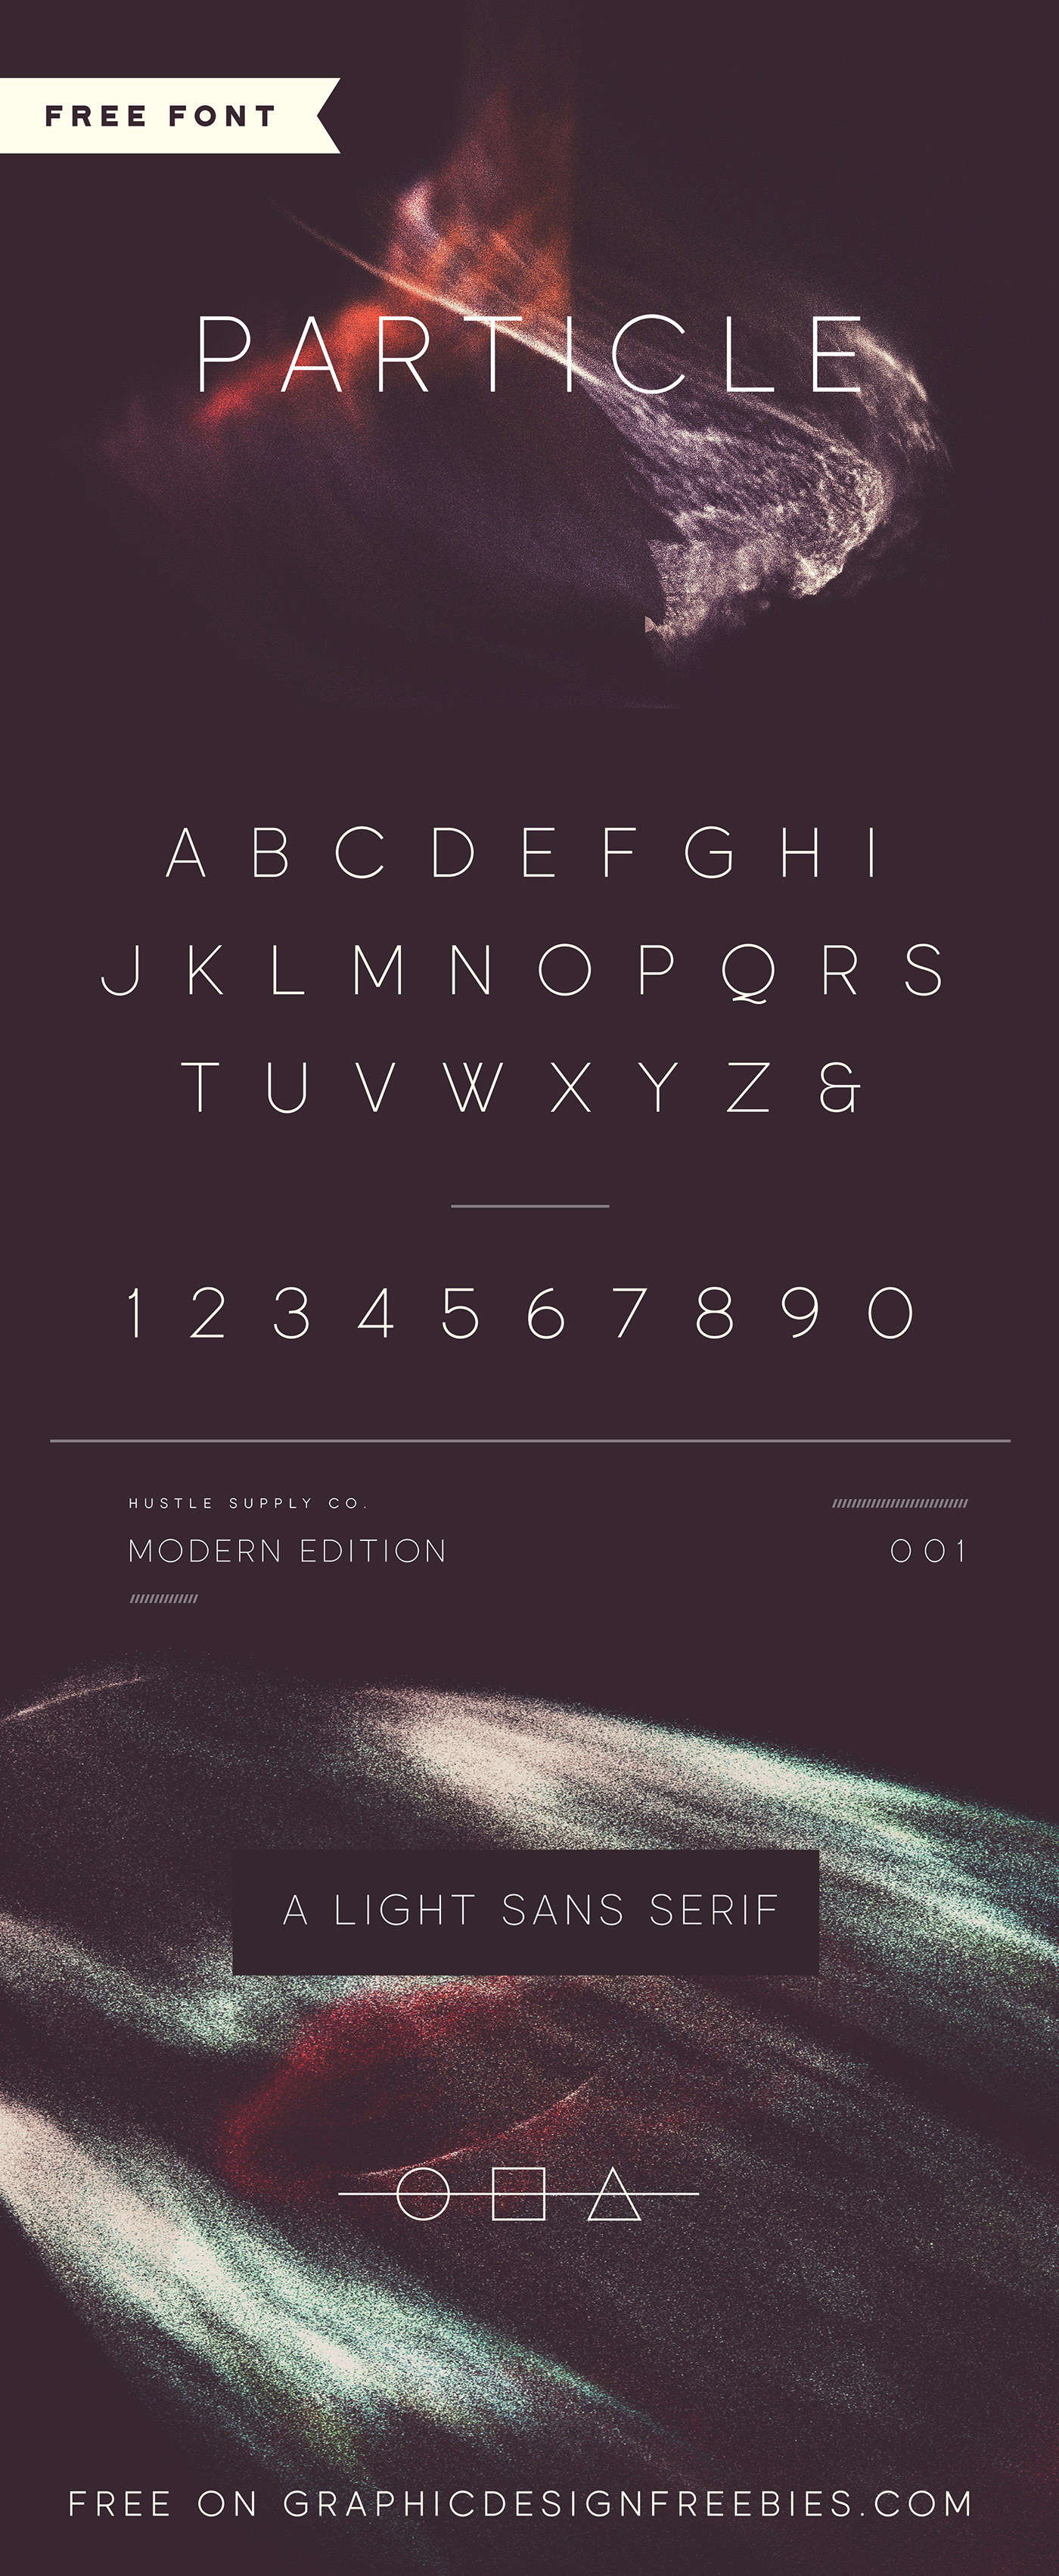 Particle - Free Font